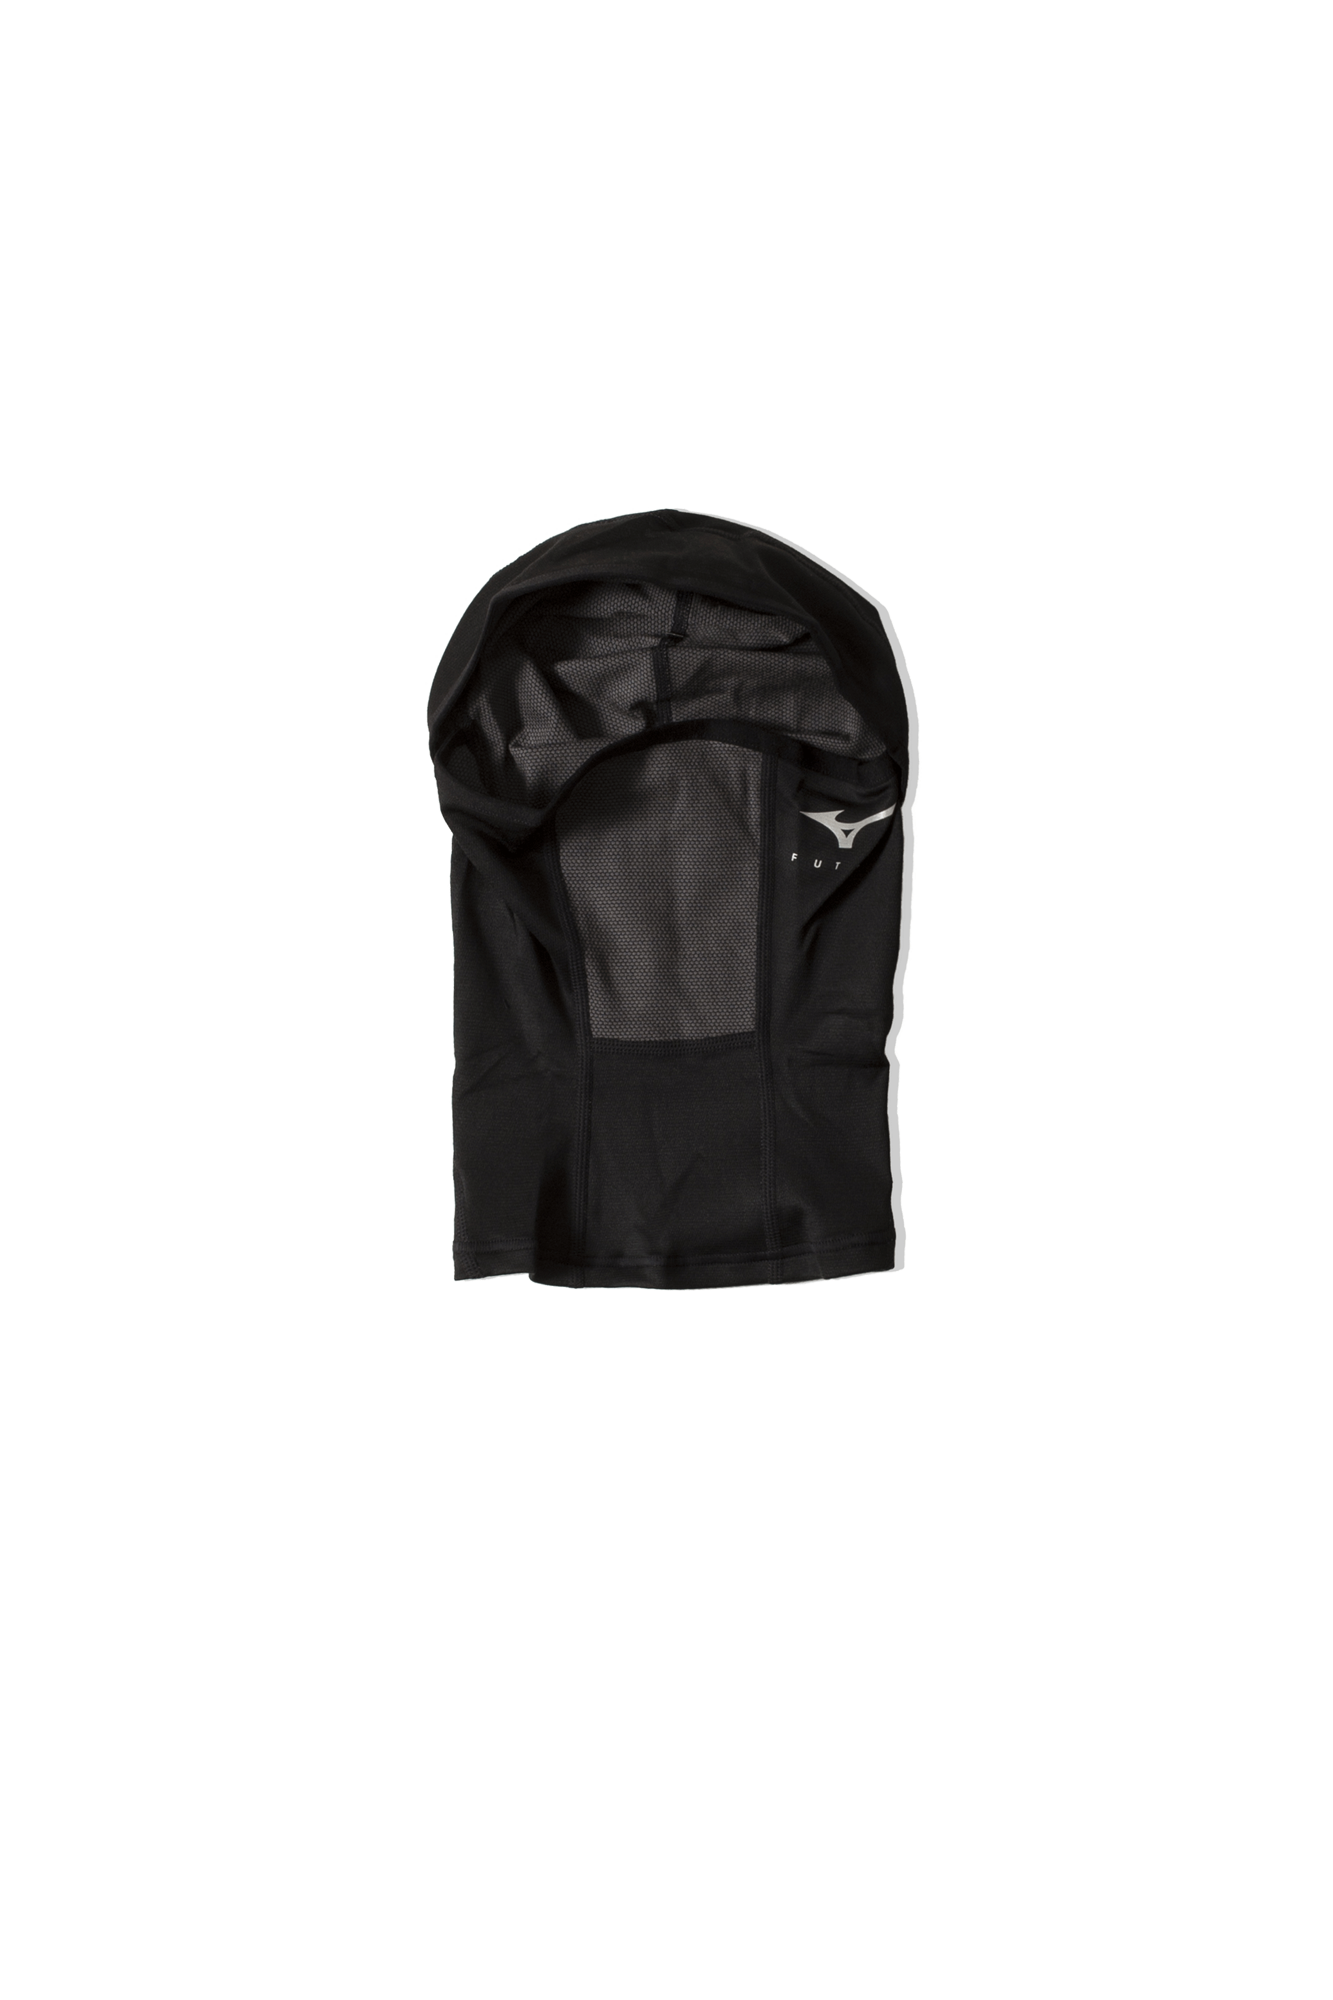 BT BALACLAVA Black